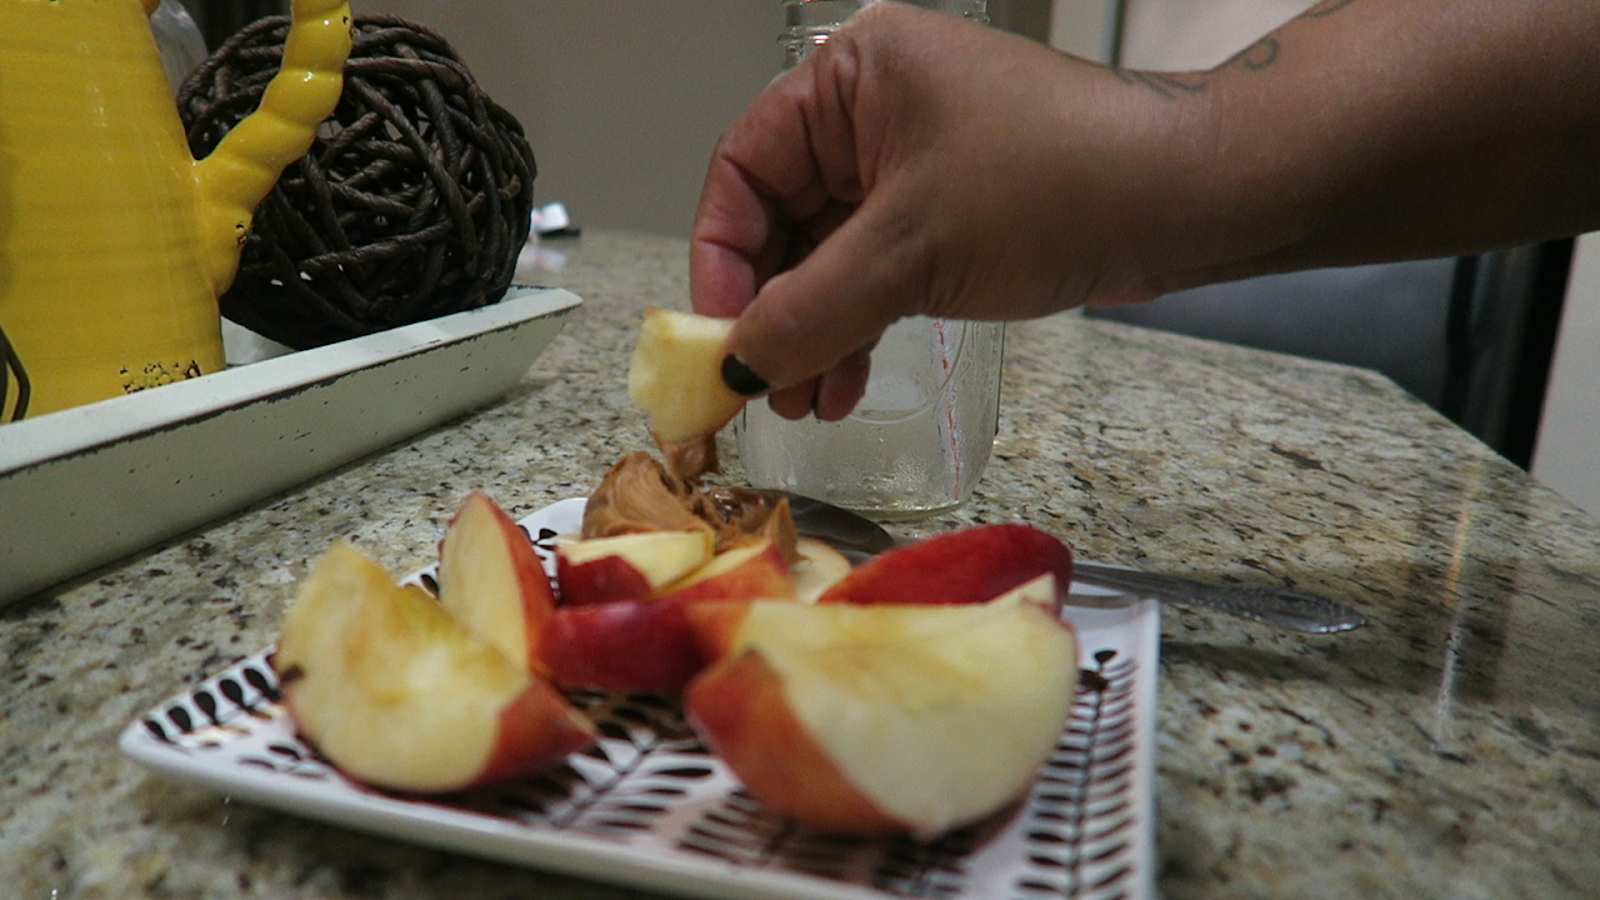 Image: Woman eating apples and sharing her pre workout meal in the mornings.